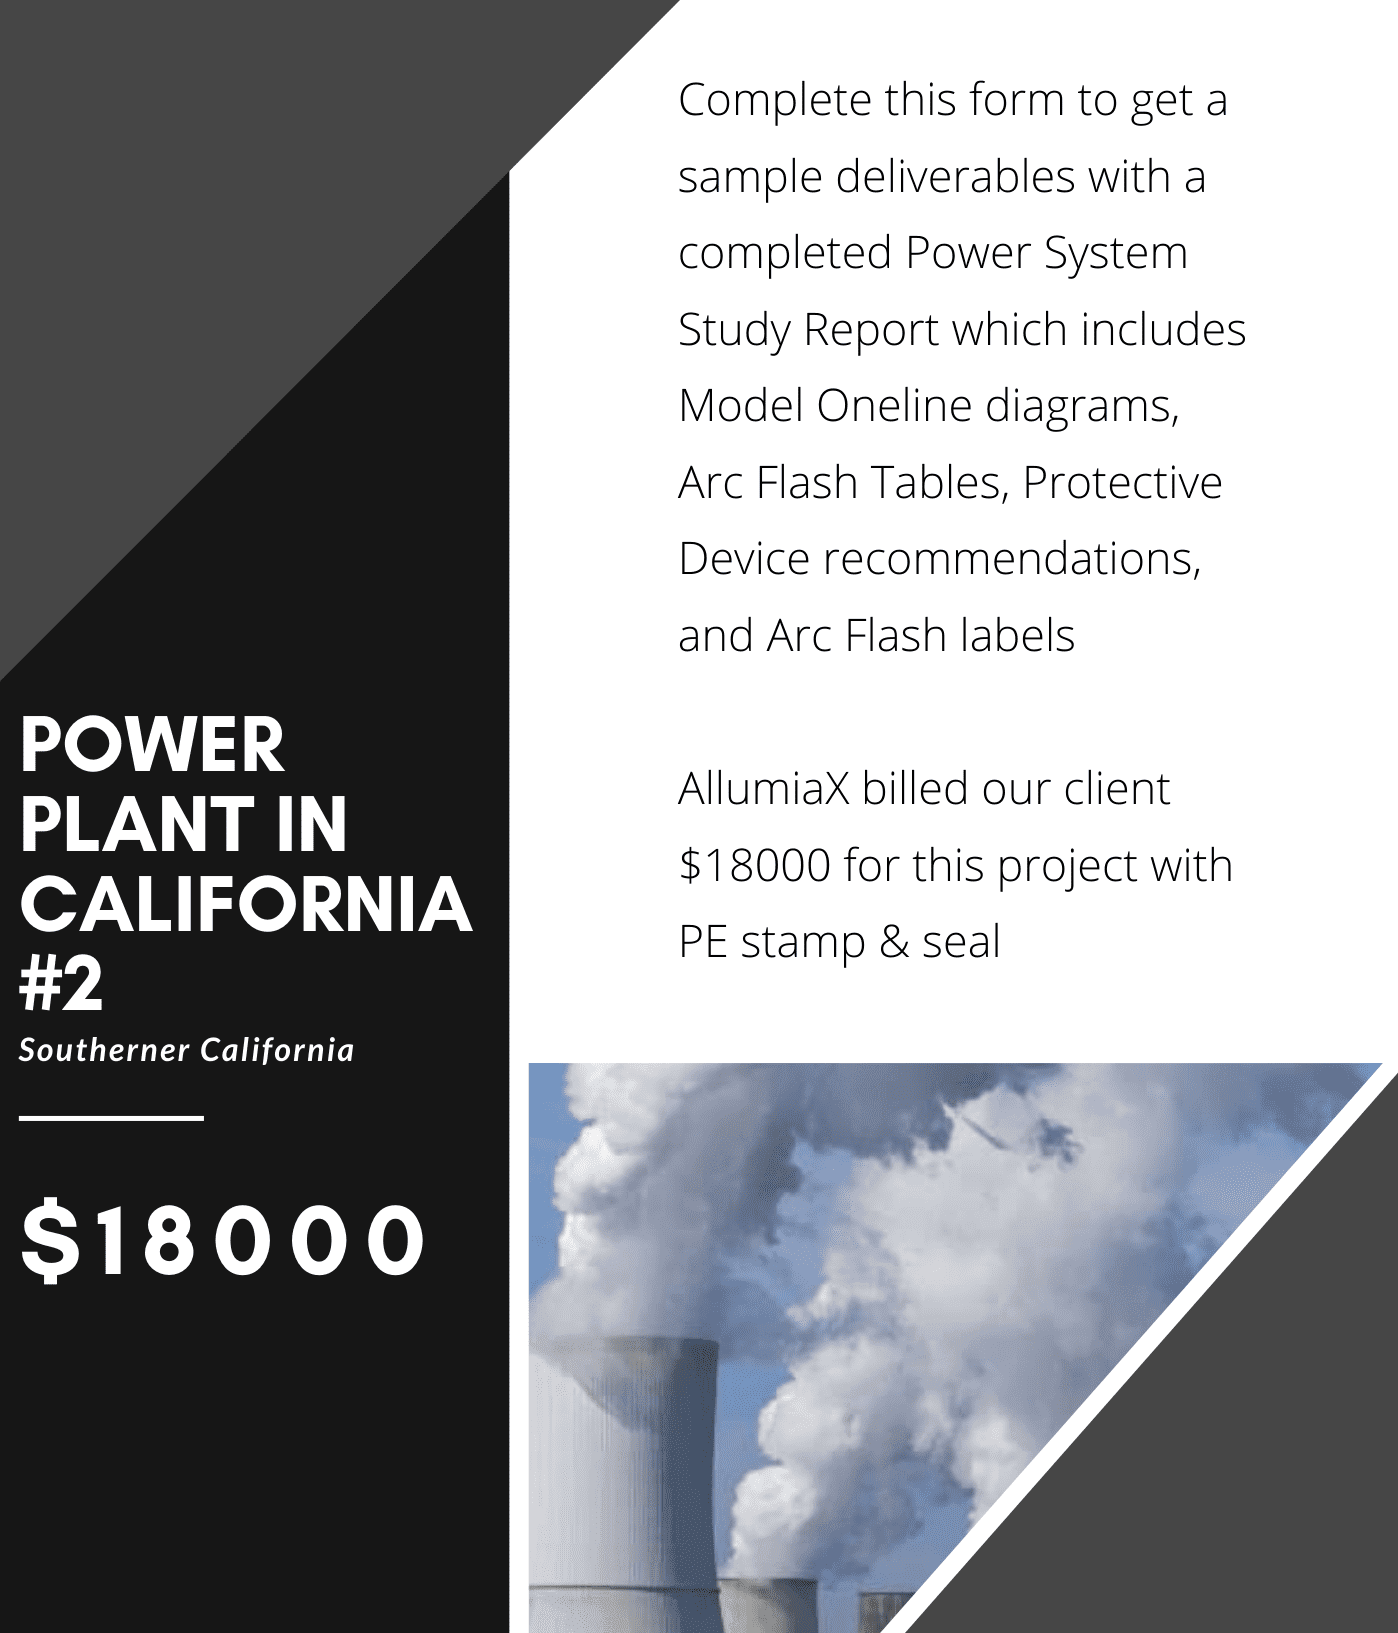 Power Plant in California #2